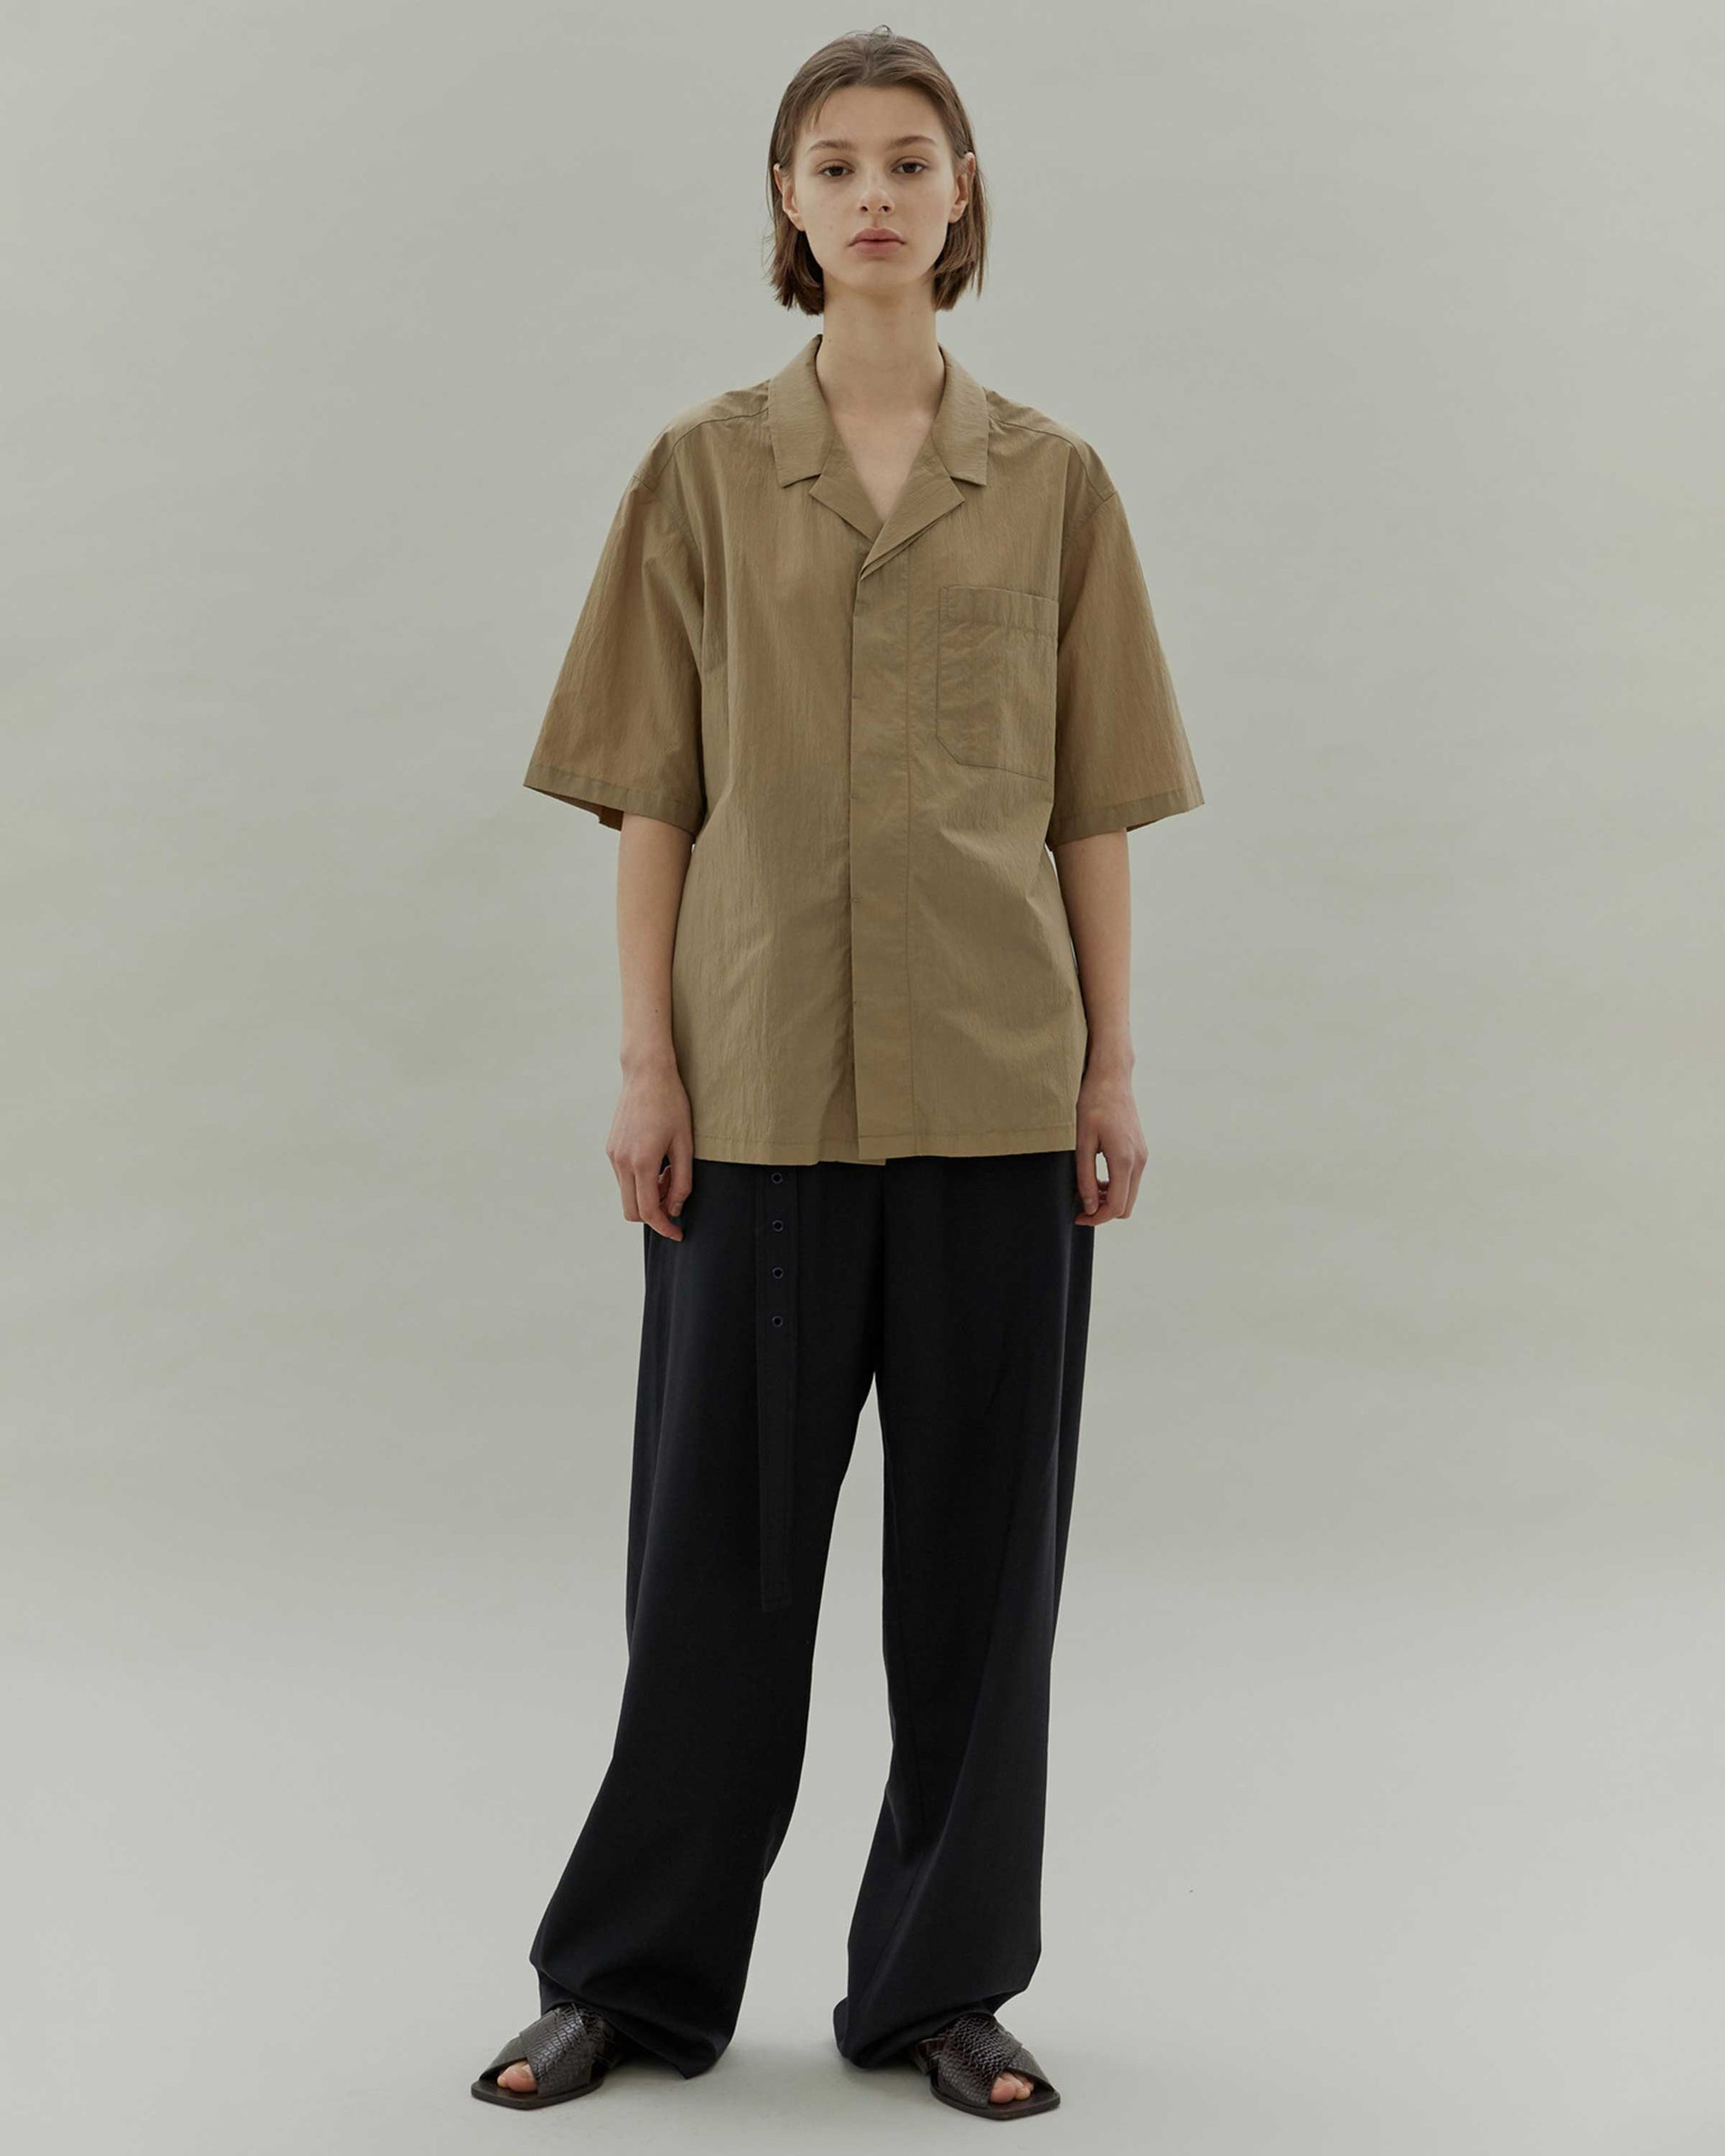 Khaki Open Collar Shirt